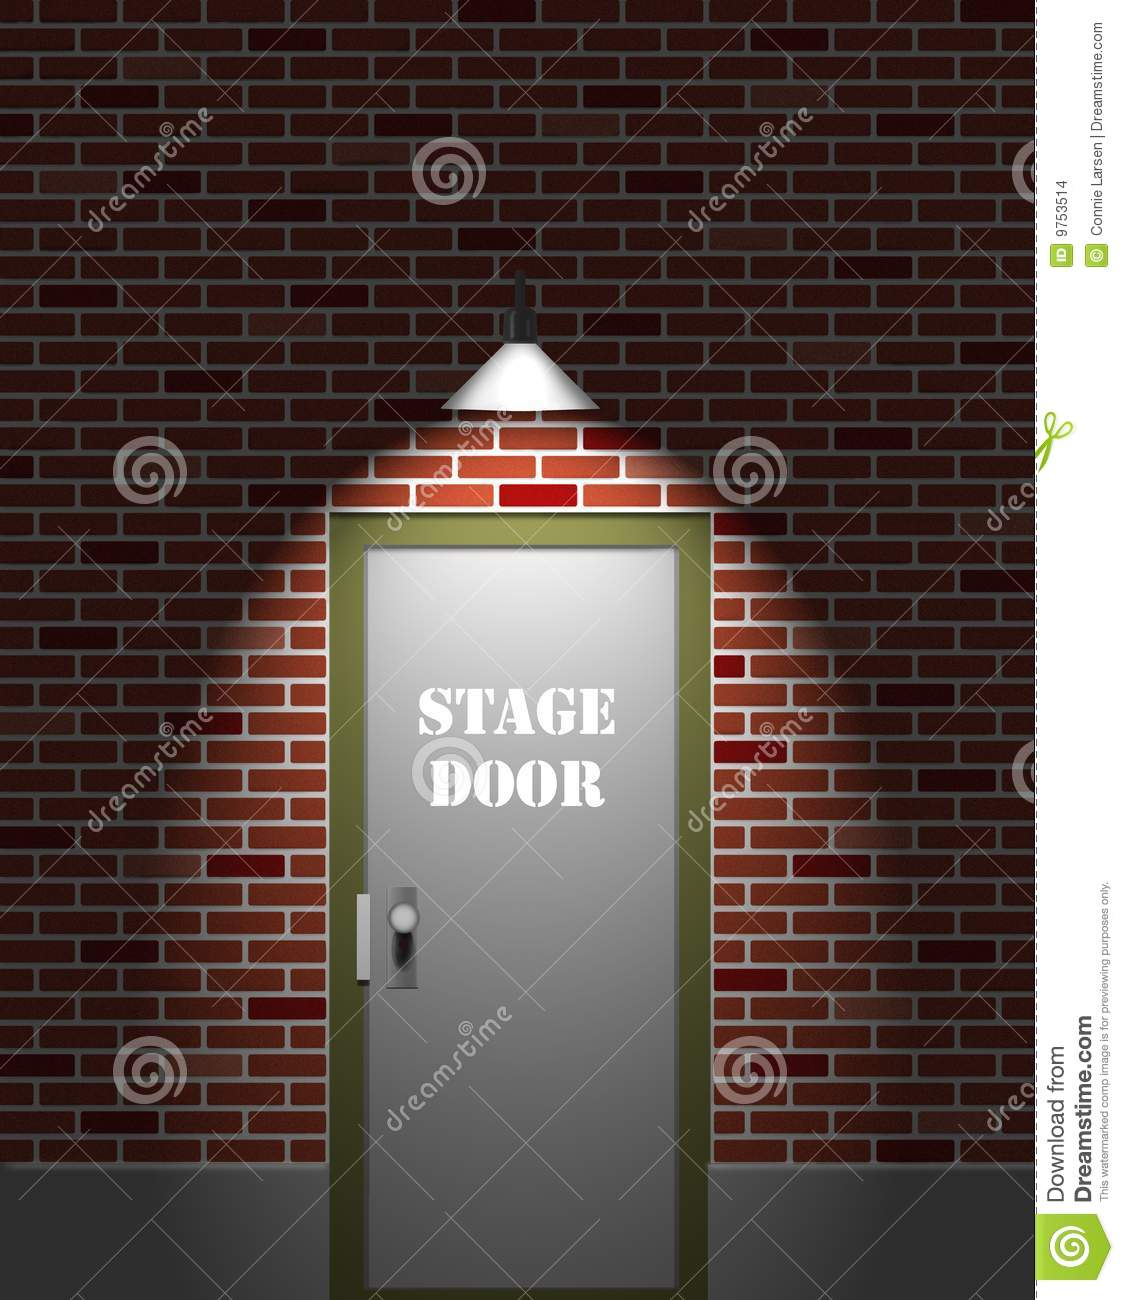 Stage Door Stock Illustrations u2013 599 Stage Door Stock Illustrations Vectors u0026 Clipart - Dreamstime & Stage Door Stock Illustrations u2013 599 Stage Door Stock Illustrations ...